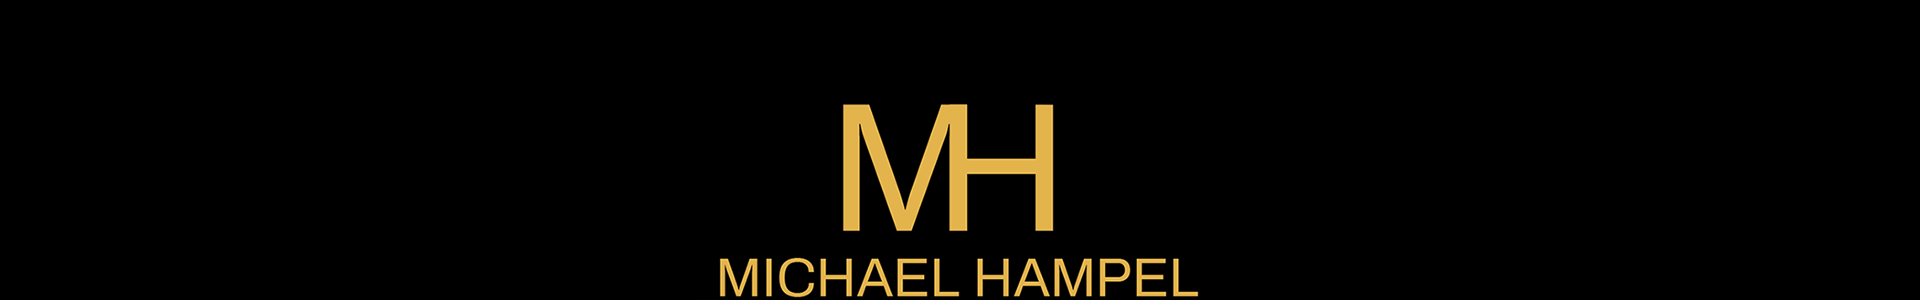 Expert Marketplace -  Michael Hampel